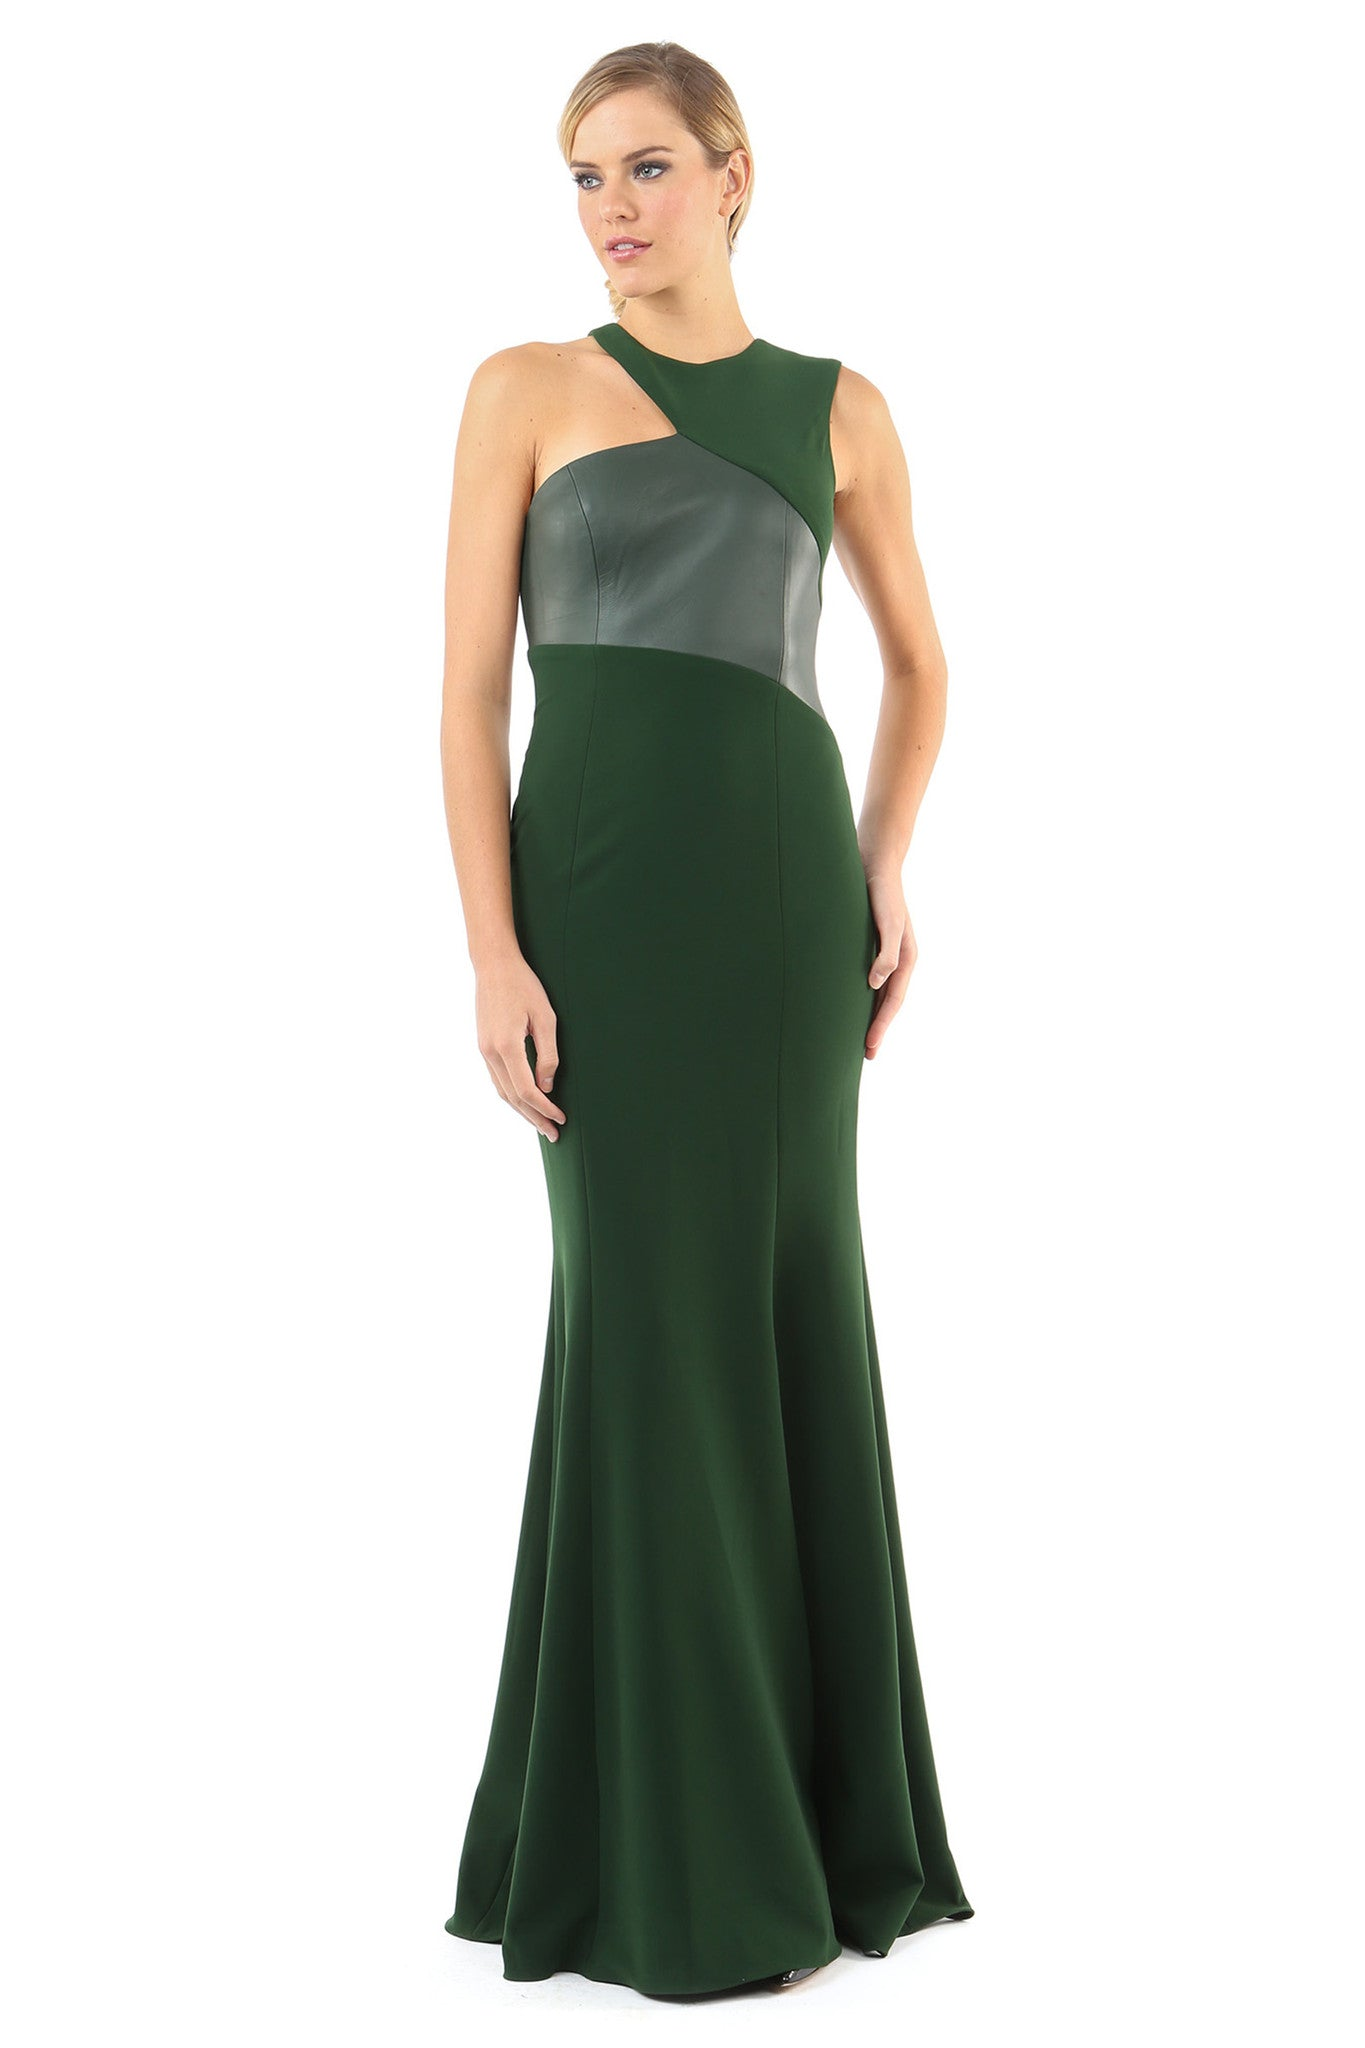 Jay Godfrey Green Leather Detail Gown - Front View